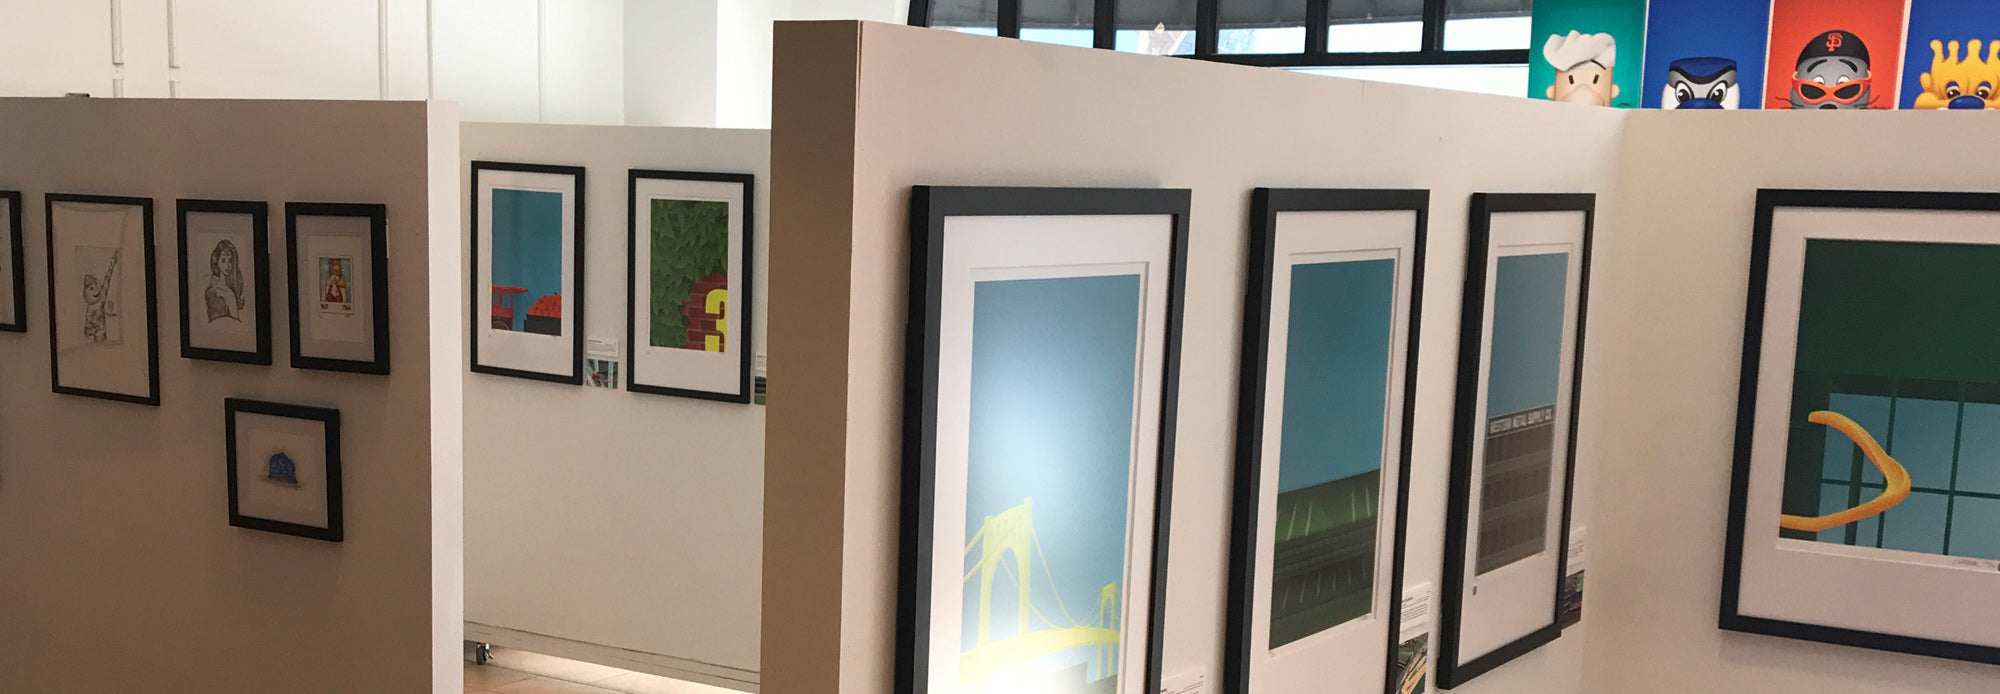 the s preston art designs gallery opened in september 2017 the gallery features his minimalist baseball art collection which include his minimalist - House Gallery Designs With Photos